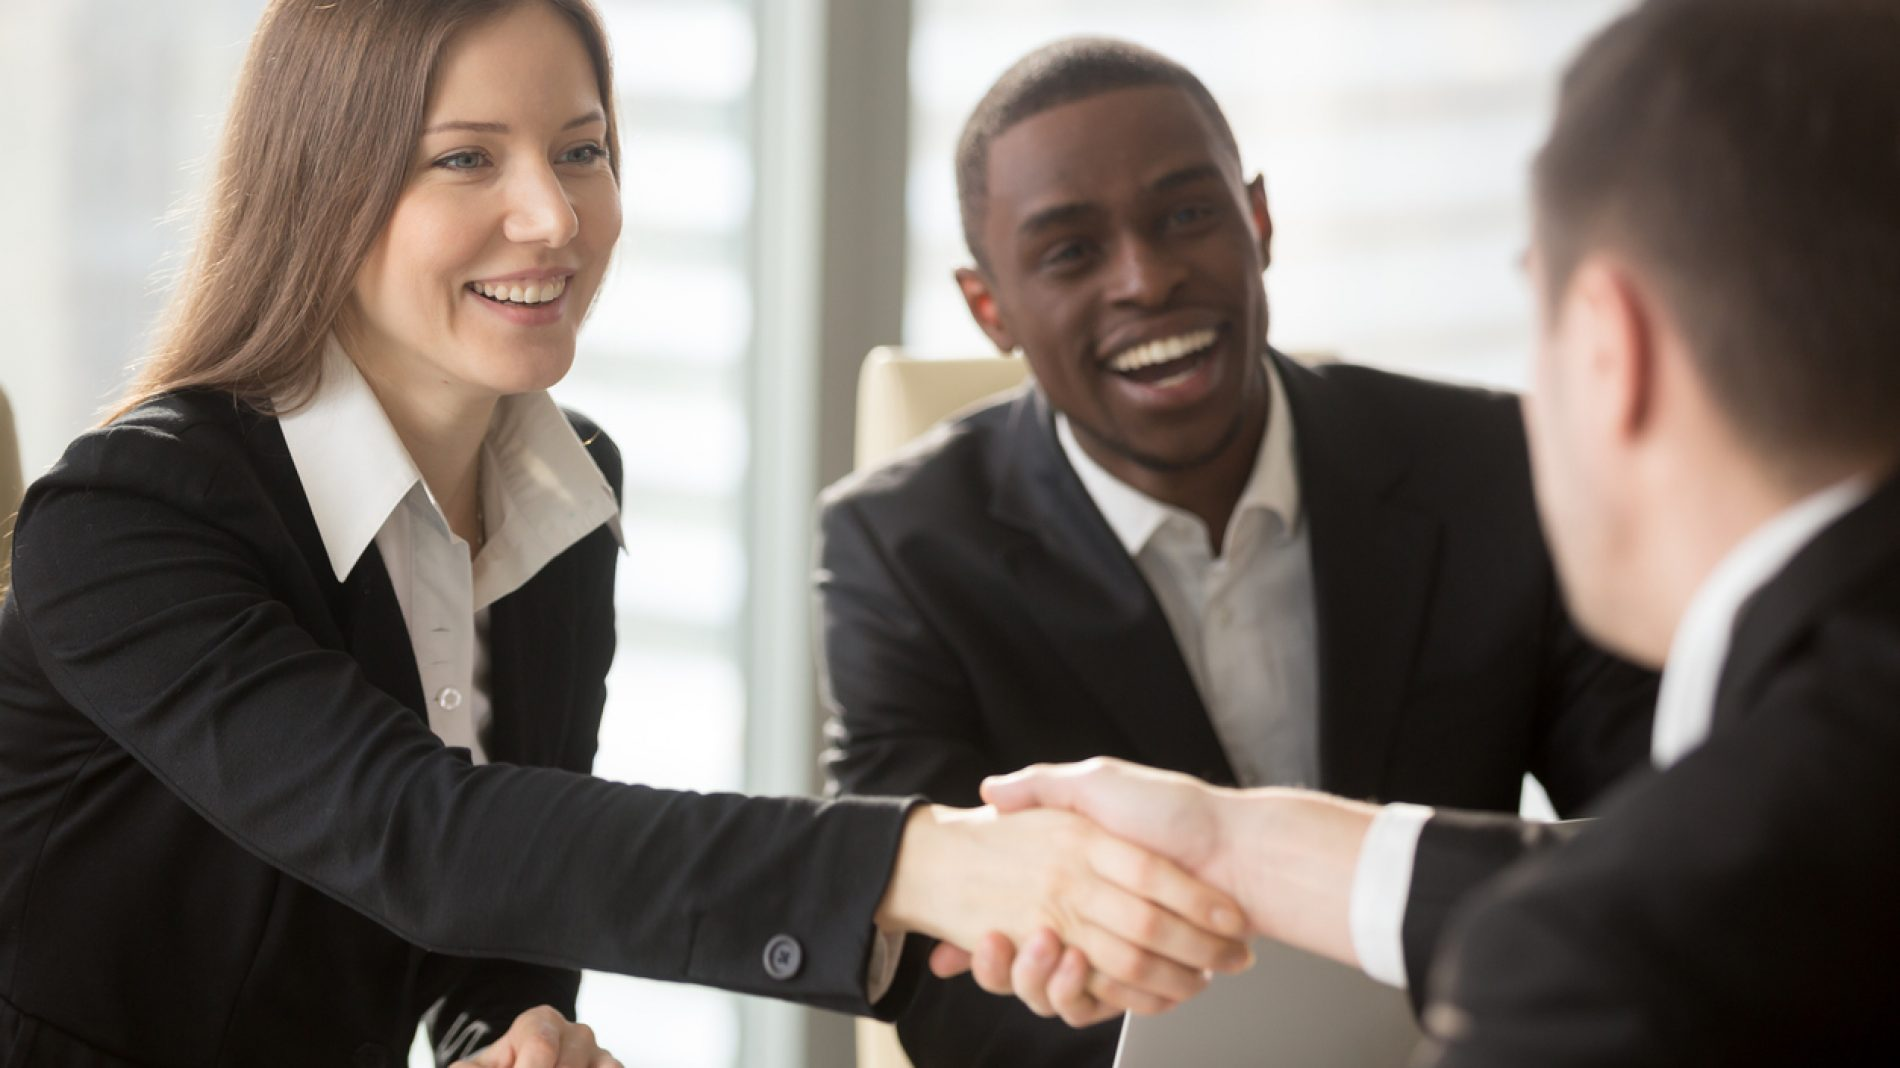 Female HR manager handshaking with job applicant